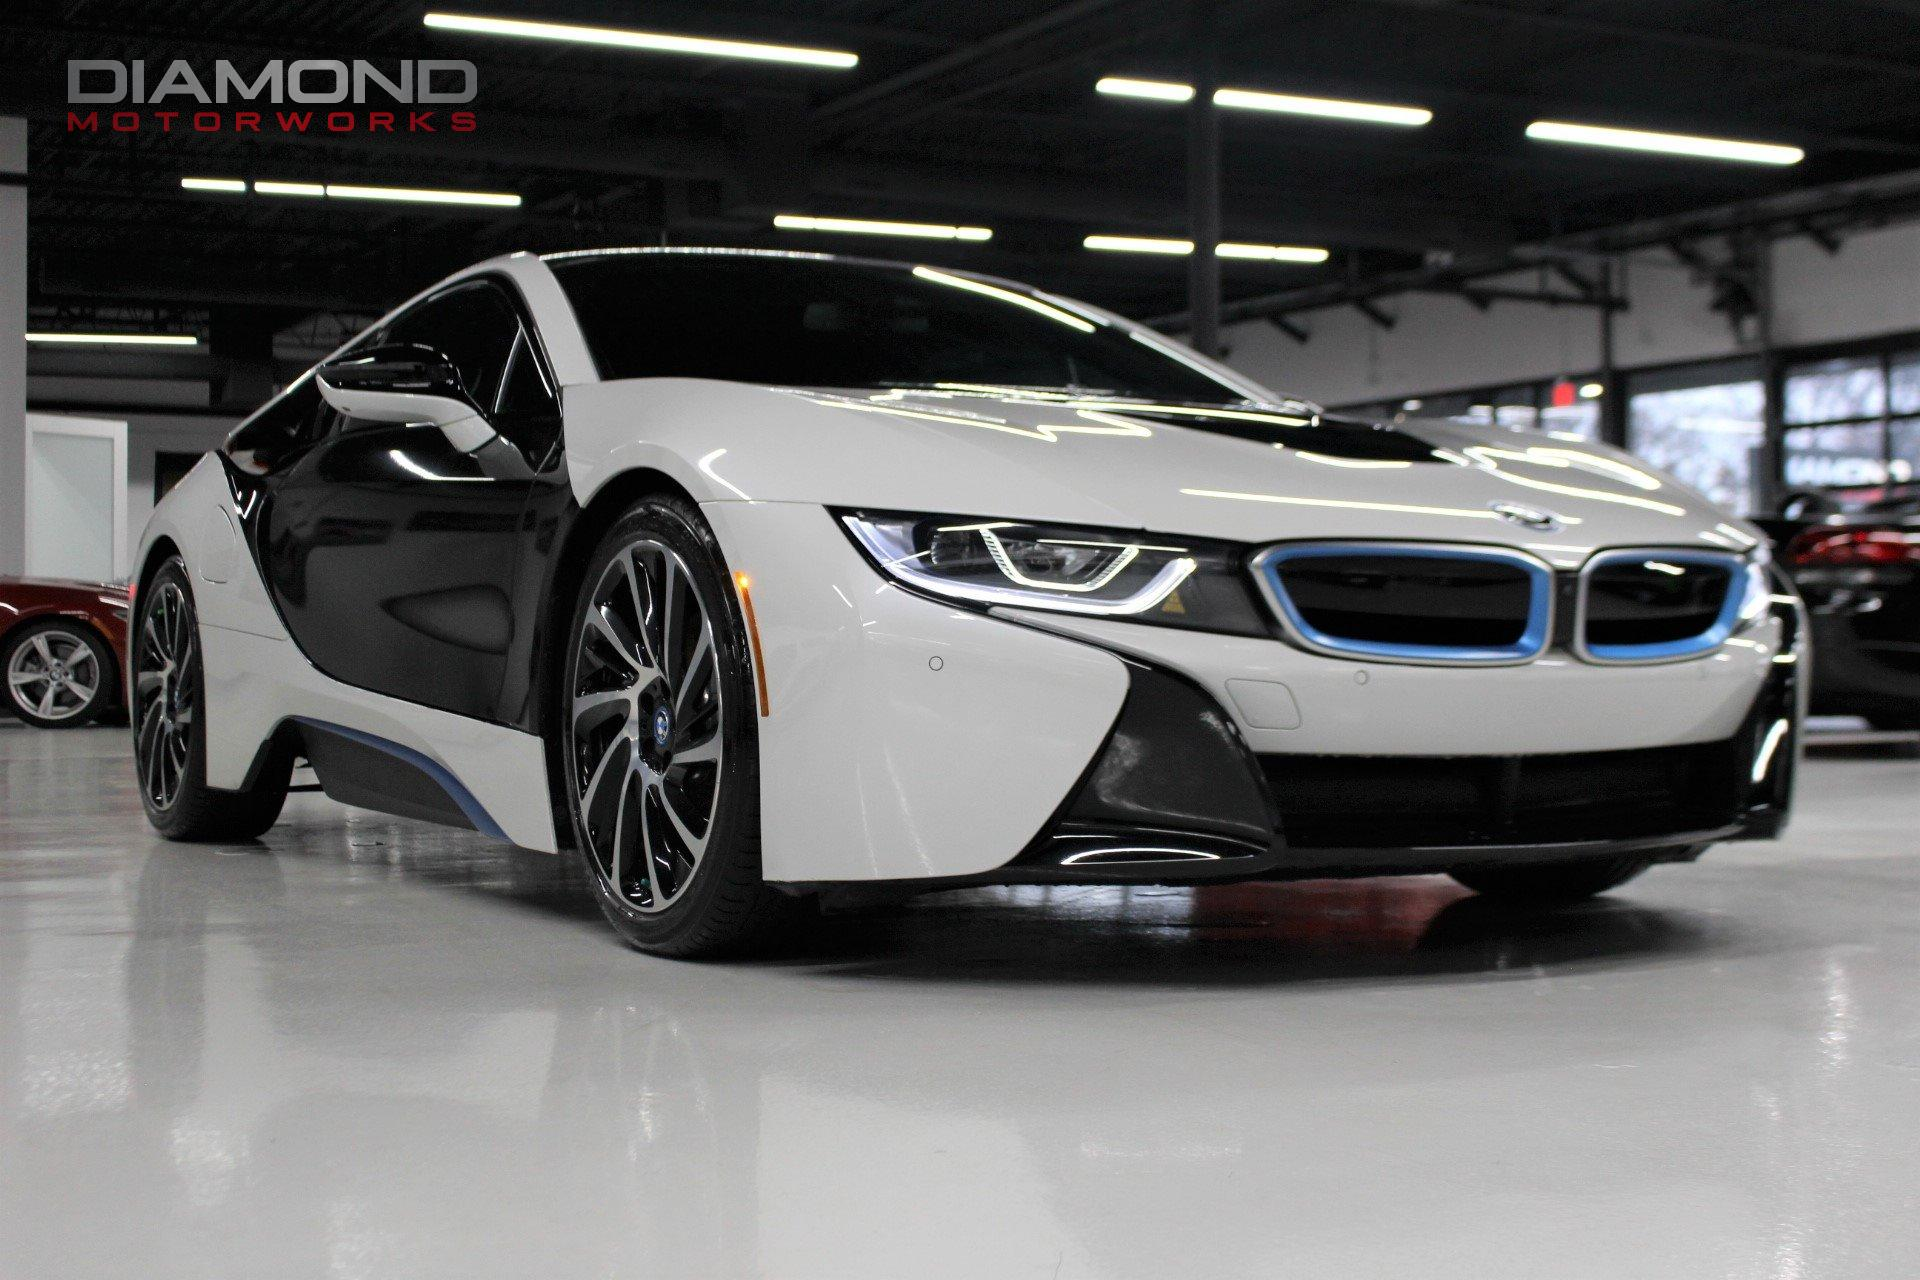 2016 Bmw I8 Giga World Trim Stock 675381 For Sale Near Lisle Il